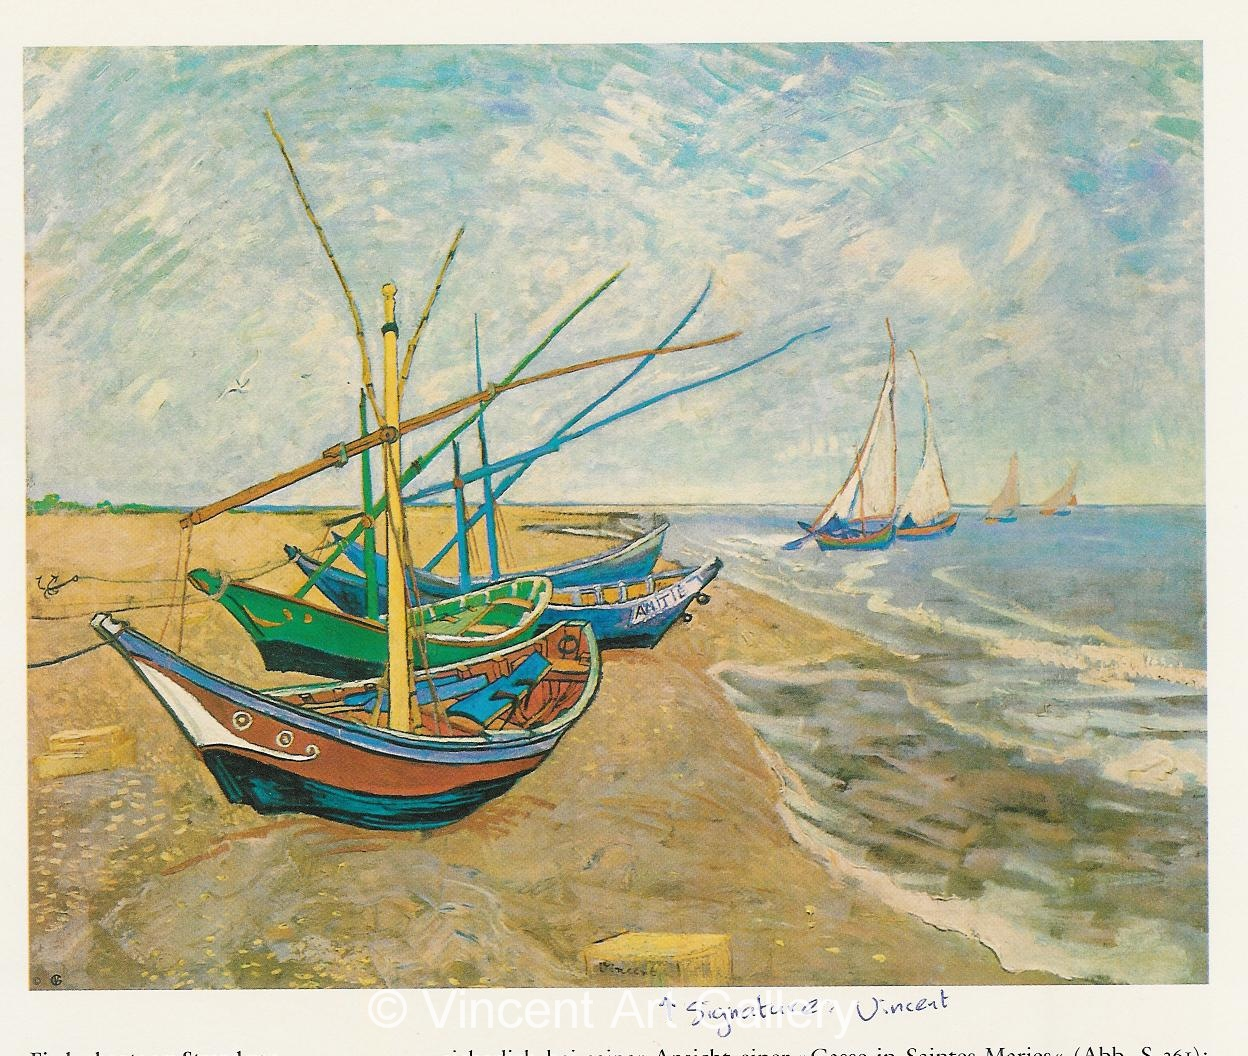 JH1460, Fishing Boats on the Beach at Saintes-Maries